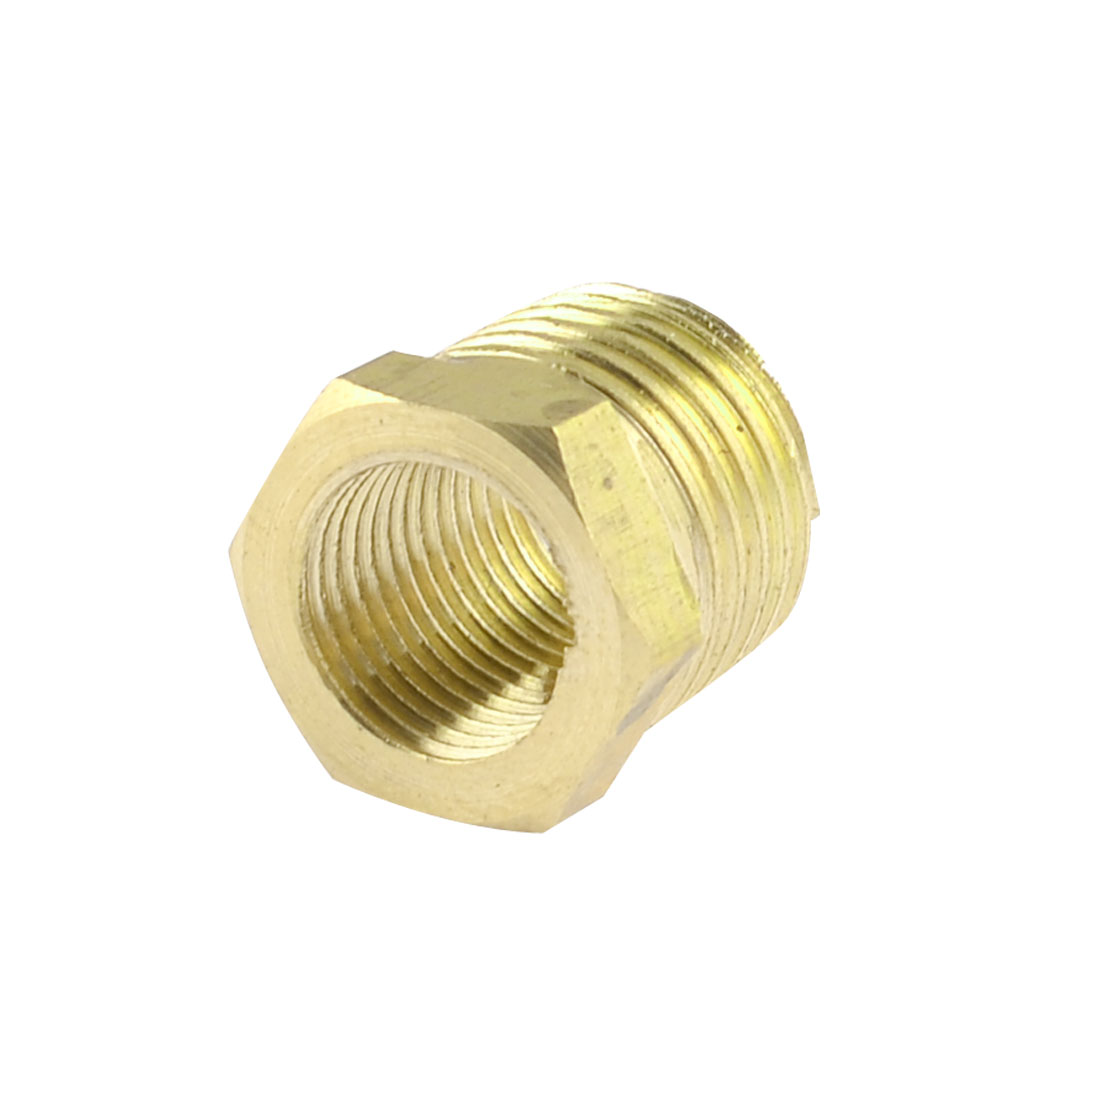 Hose Fitting Connector 12mm x 9mm Thread Brass Hex Bushing Gold Tone